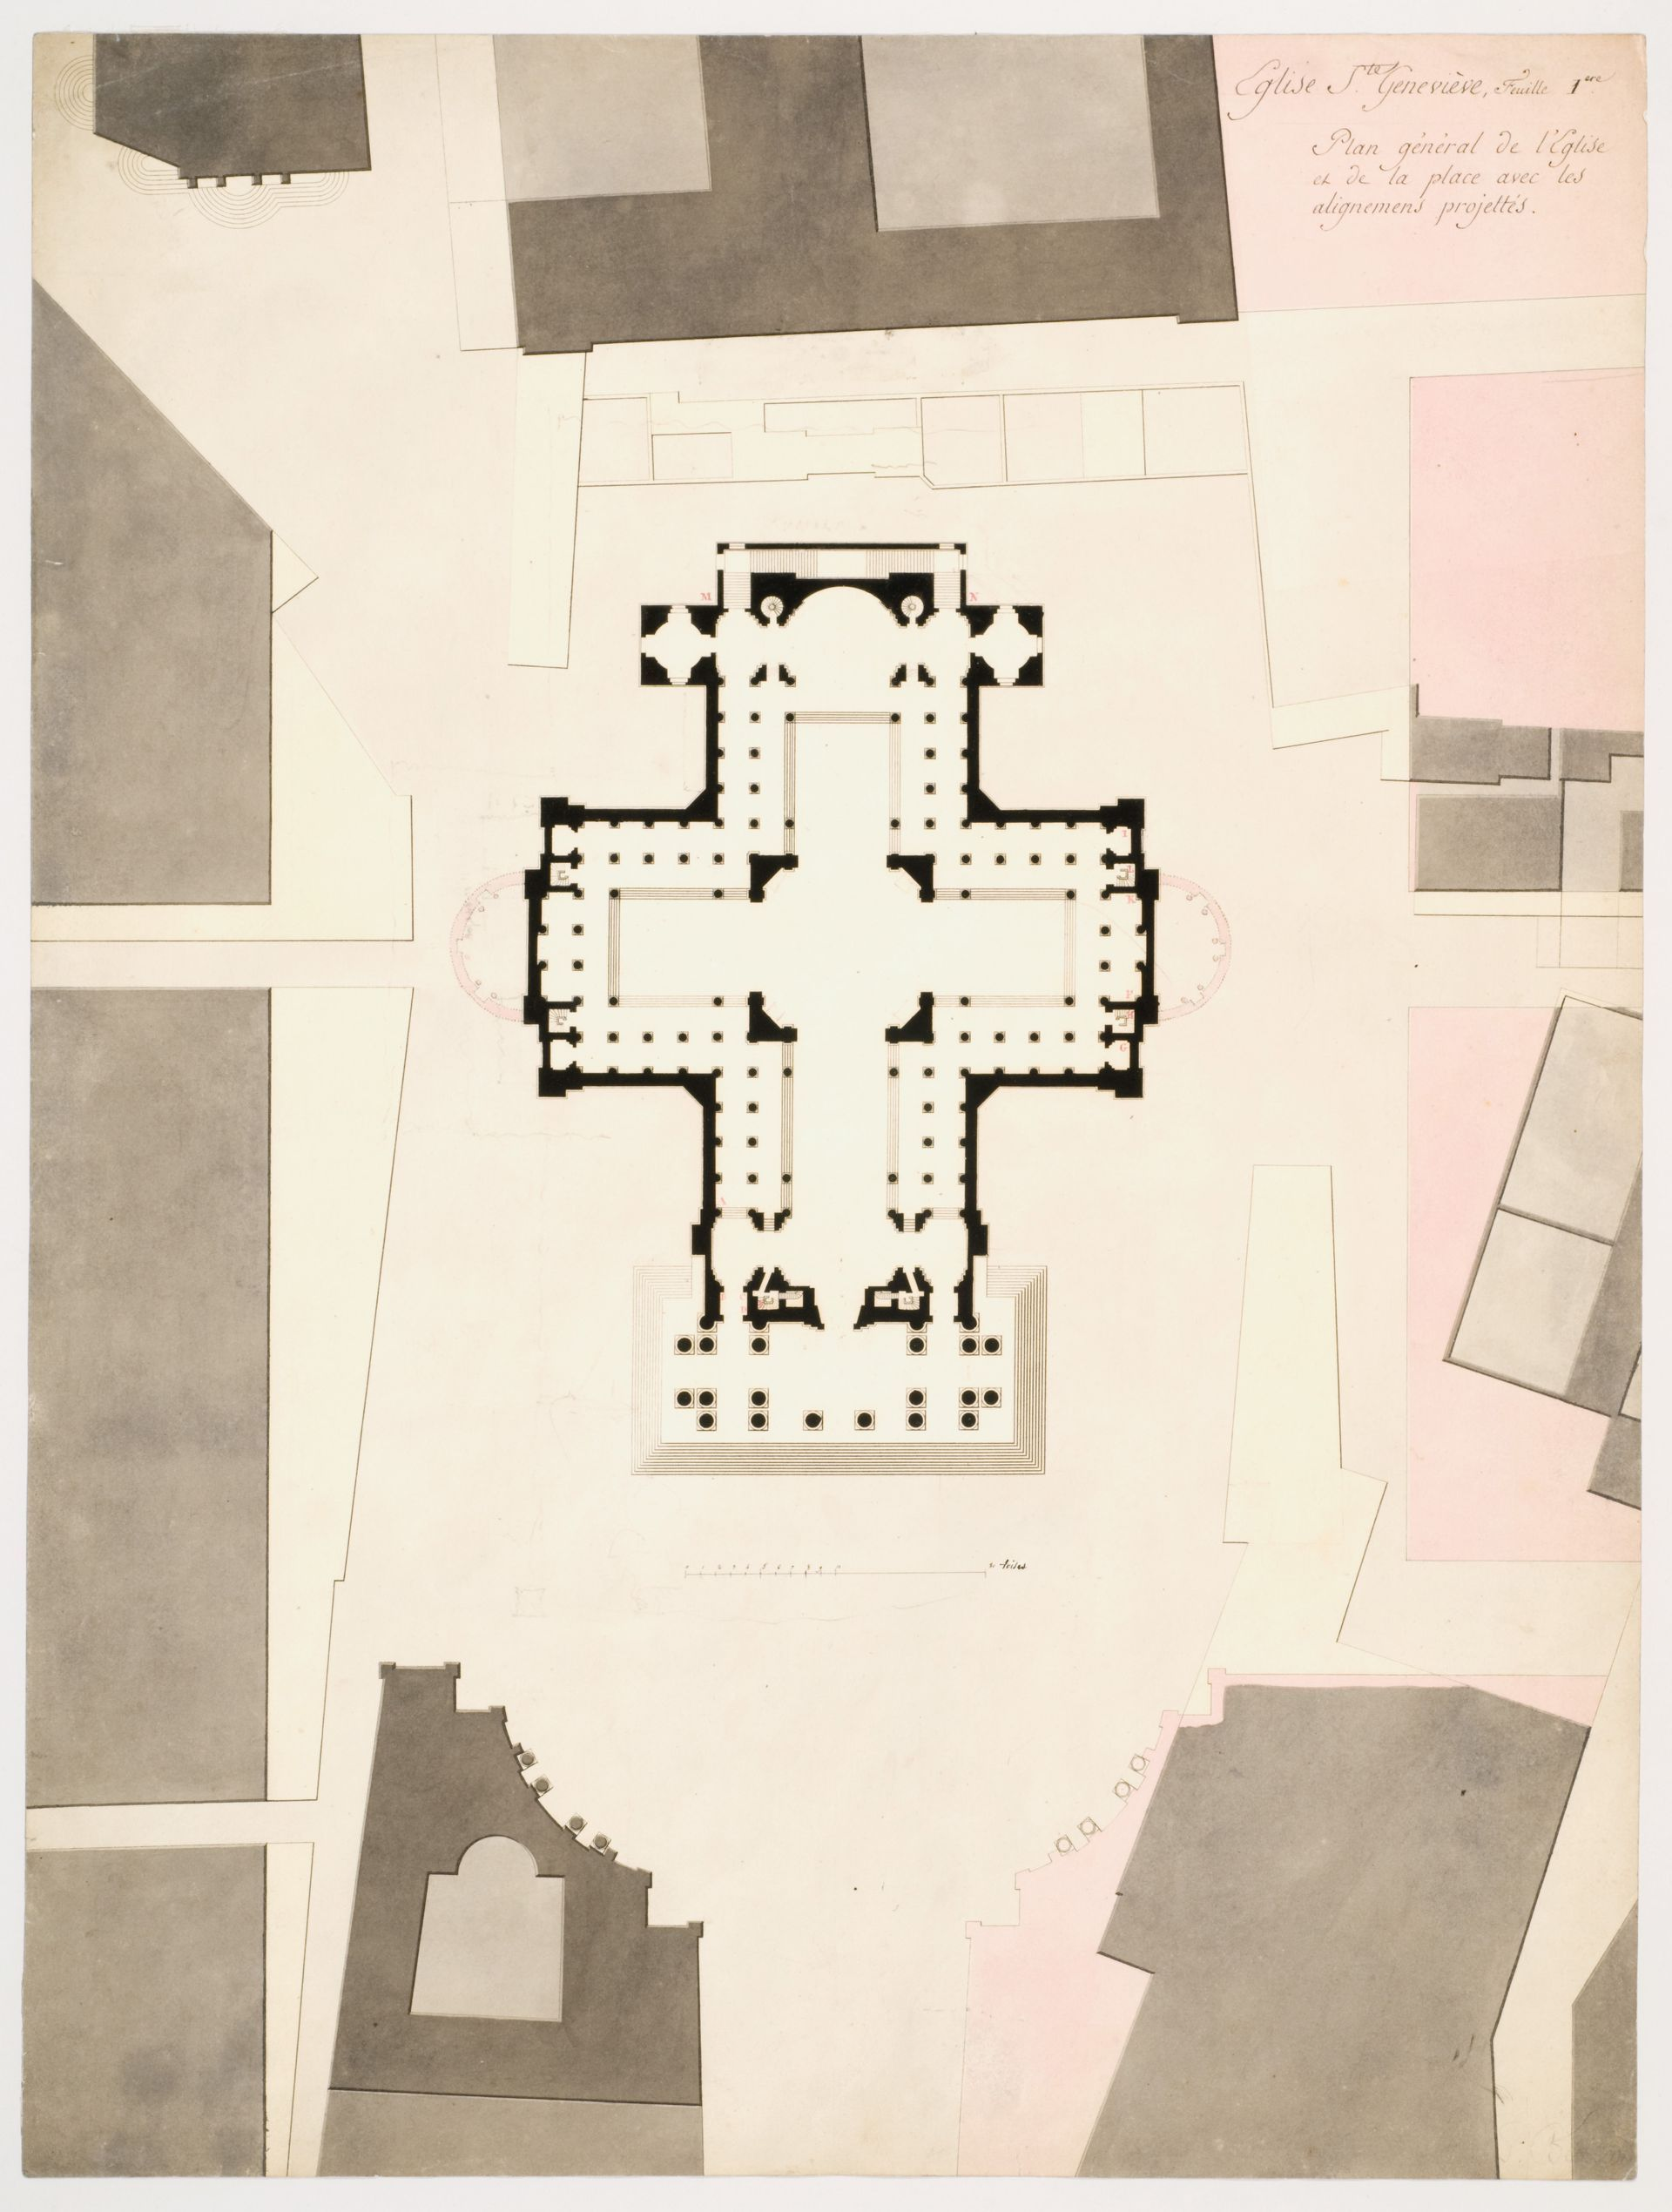 Louis Pierre Baltard Plan Showing Projected Alterations To Site And Church Of Sainte Genevieve 1809 How To Plan New Church French History